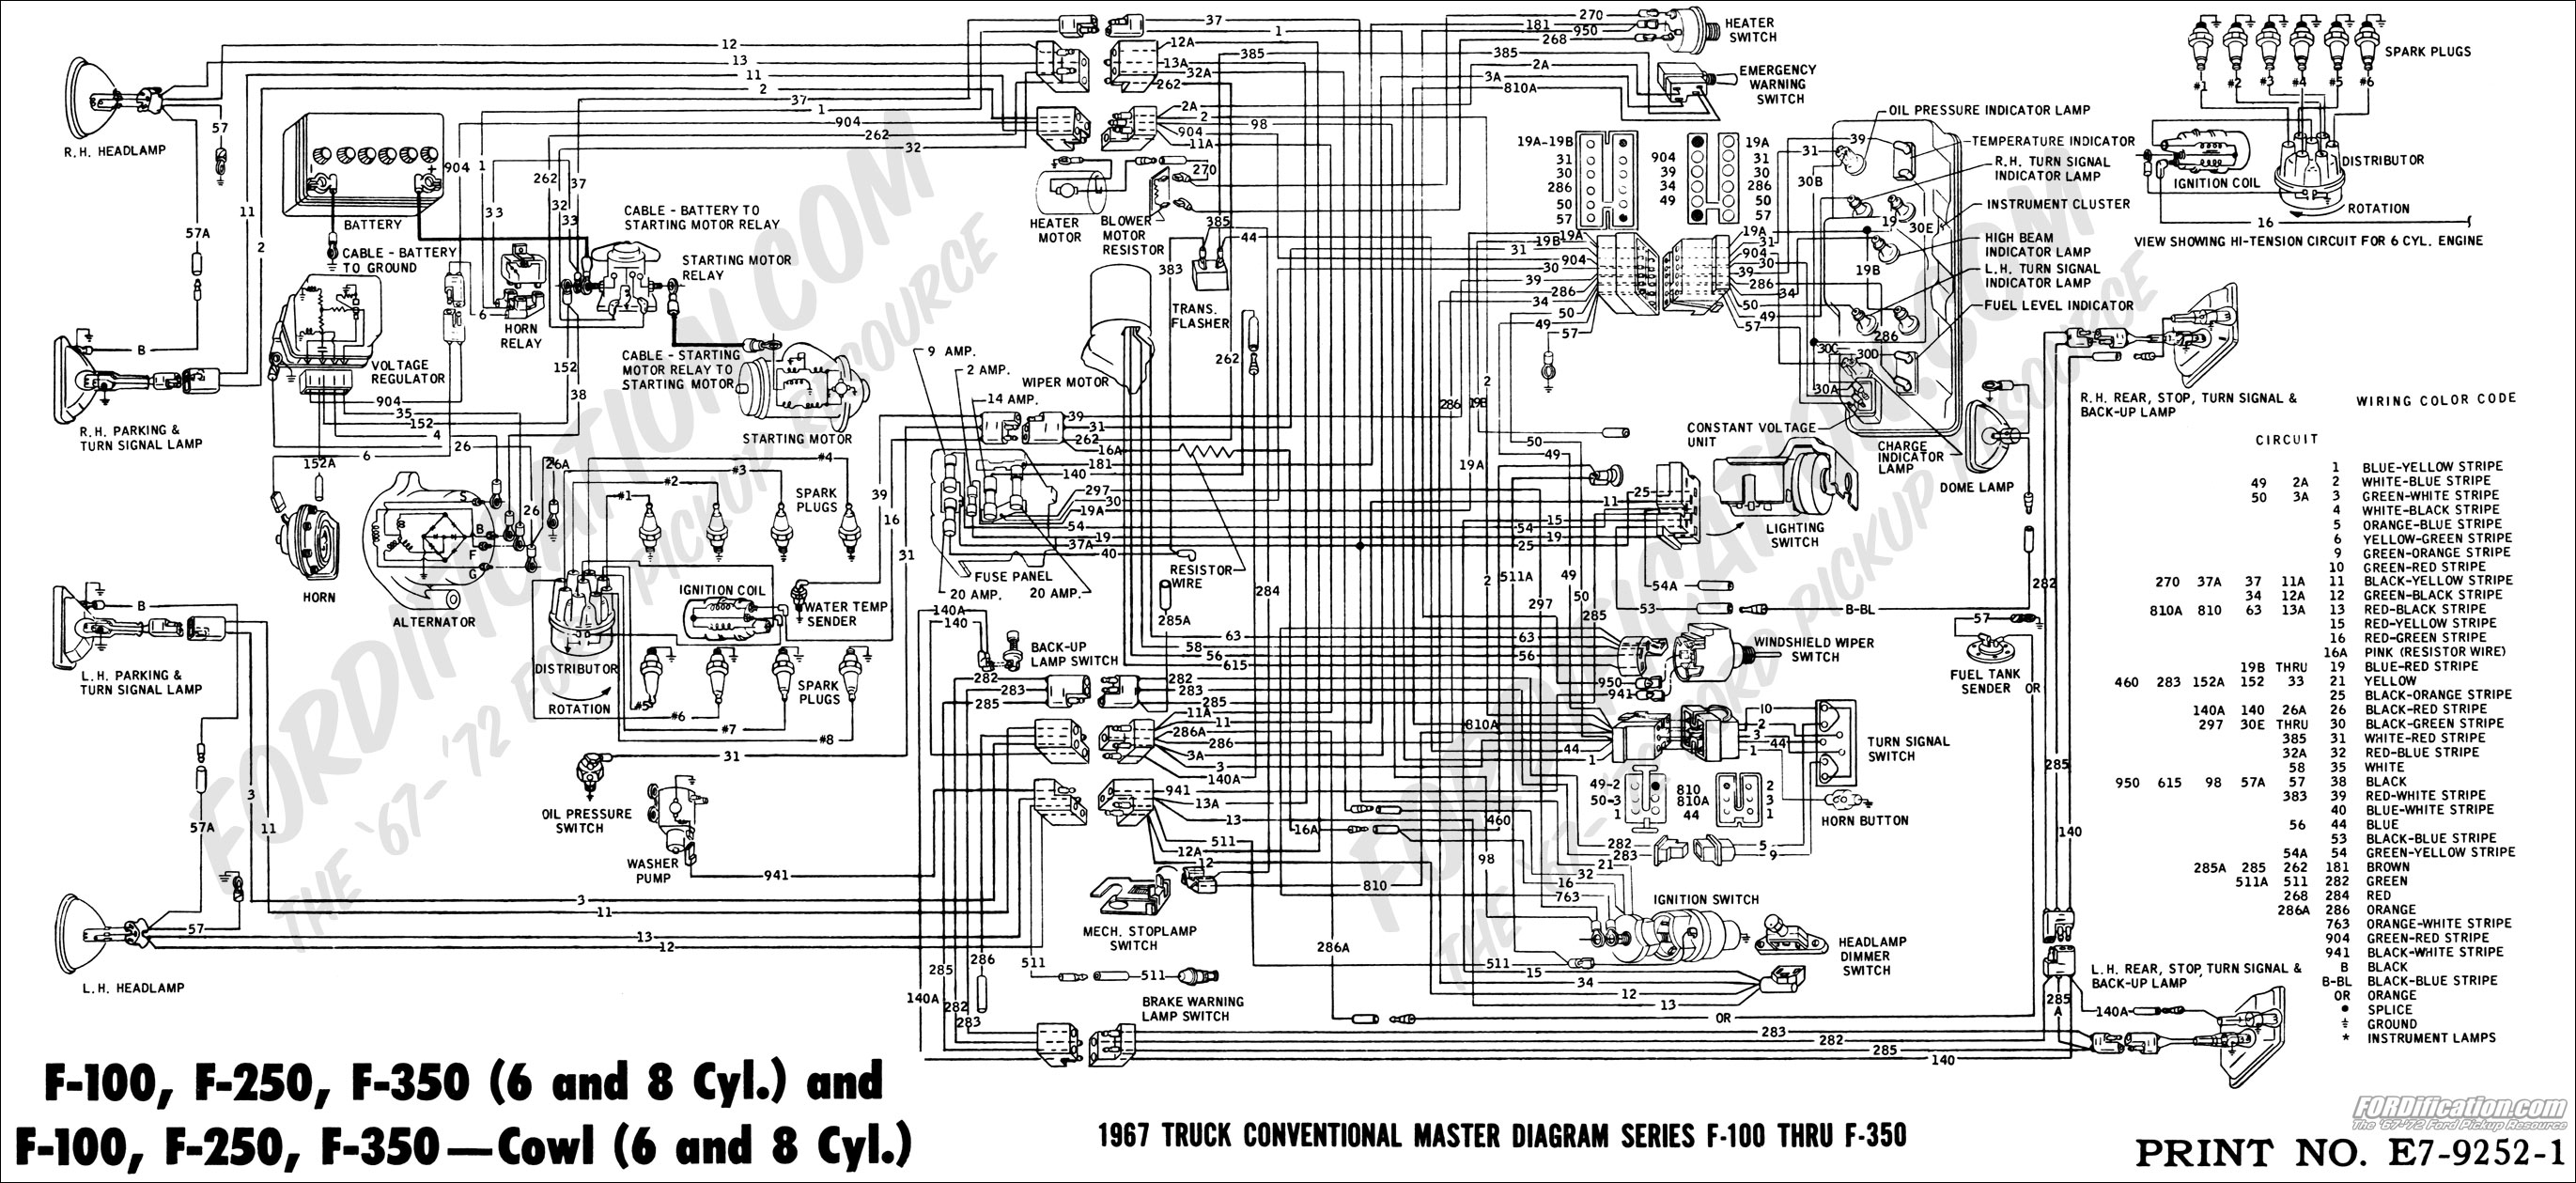 67masterdiagram ford truck technical drawings and schematics section h wiring 2005 Ford E350 Starter Wiring Circuit at reclaimingppi.co